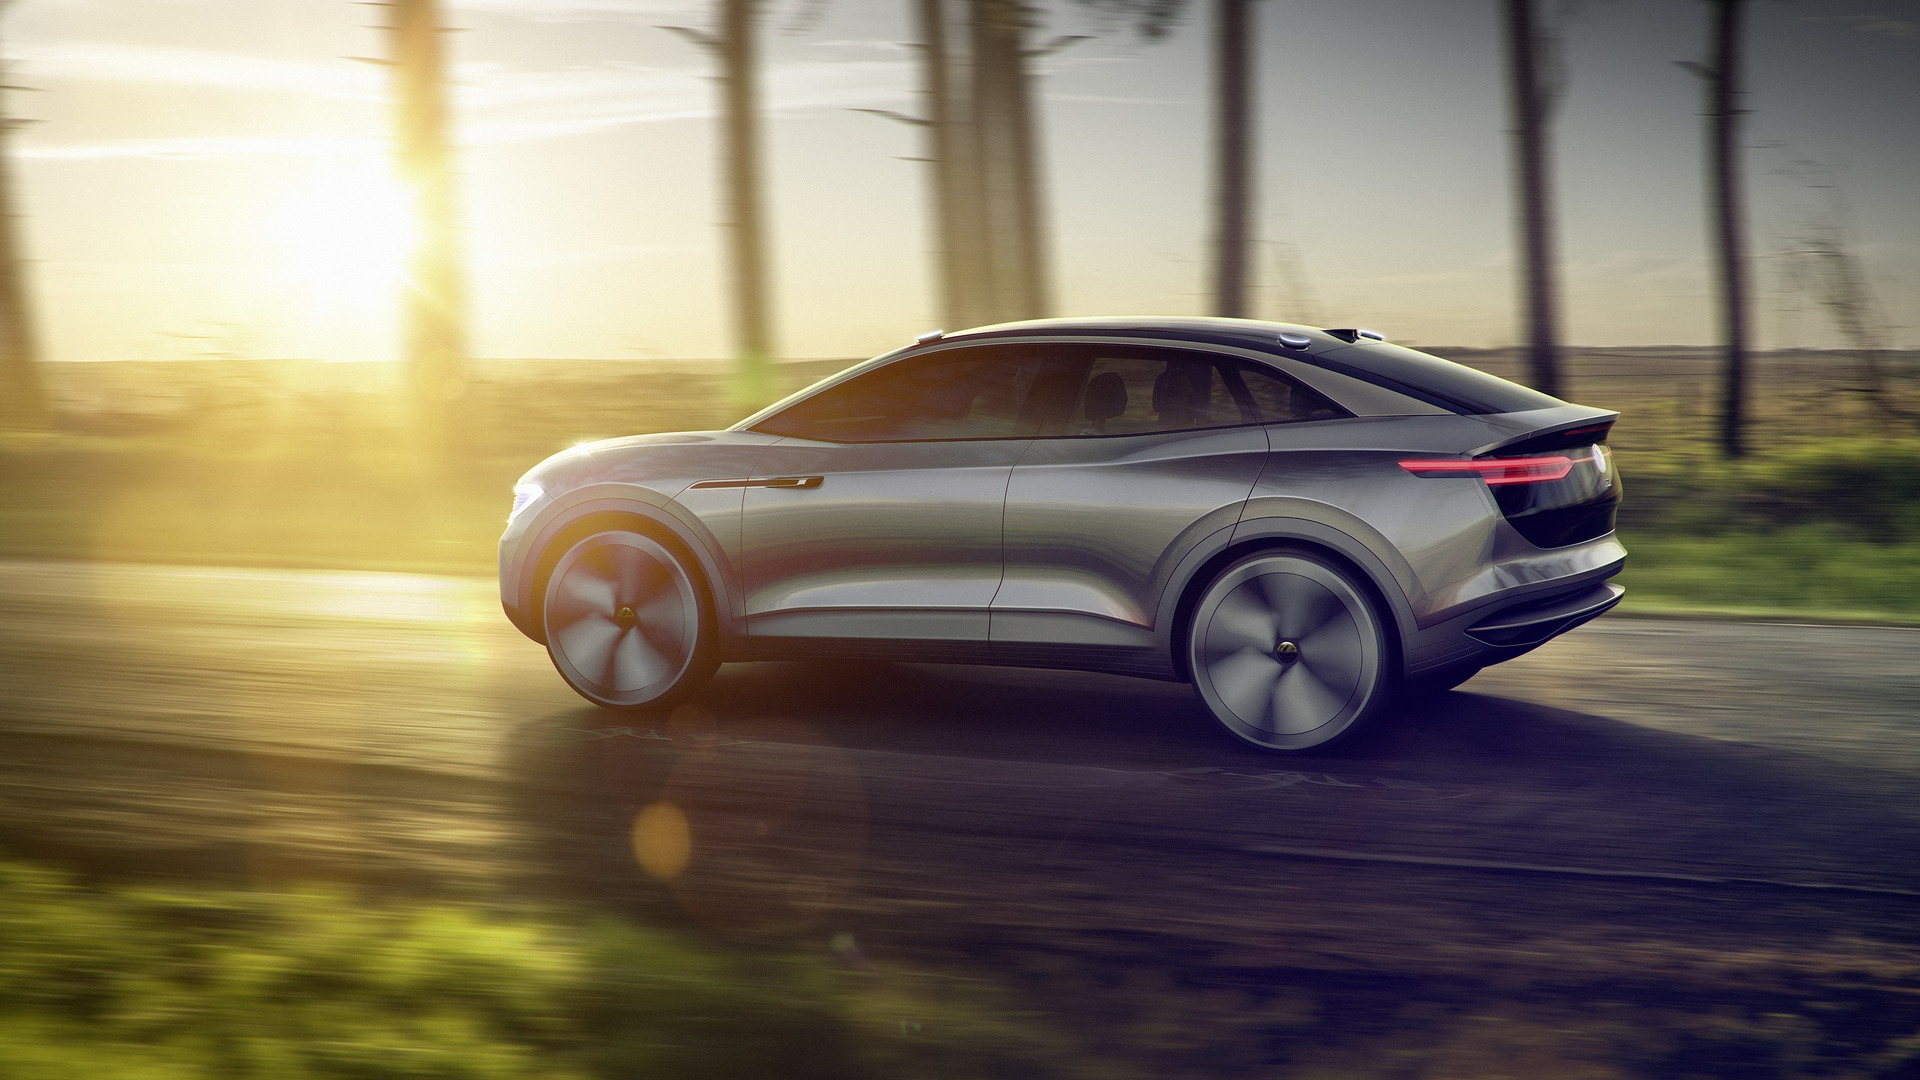 Vw plans to sell 1 million evs per year 19 suvs by 2025 for Sell em all motors